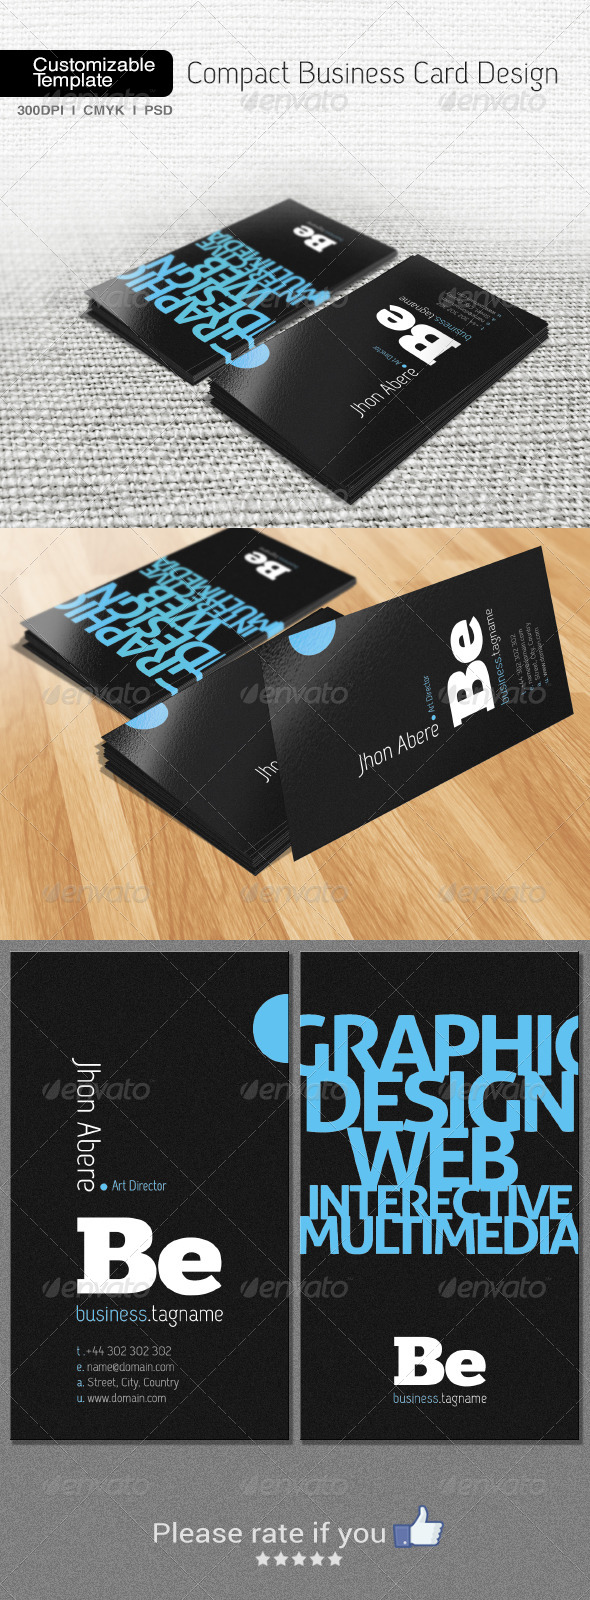 GraphicRiver Compact Business Card Design 6650183